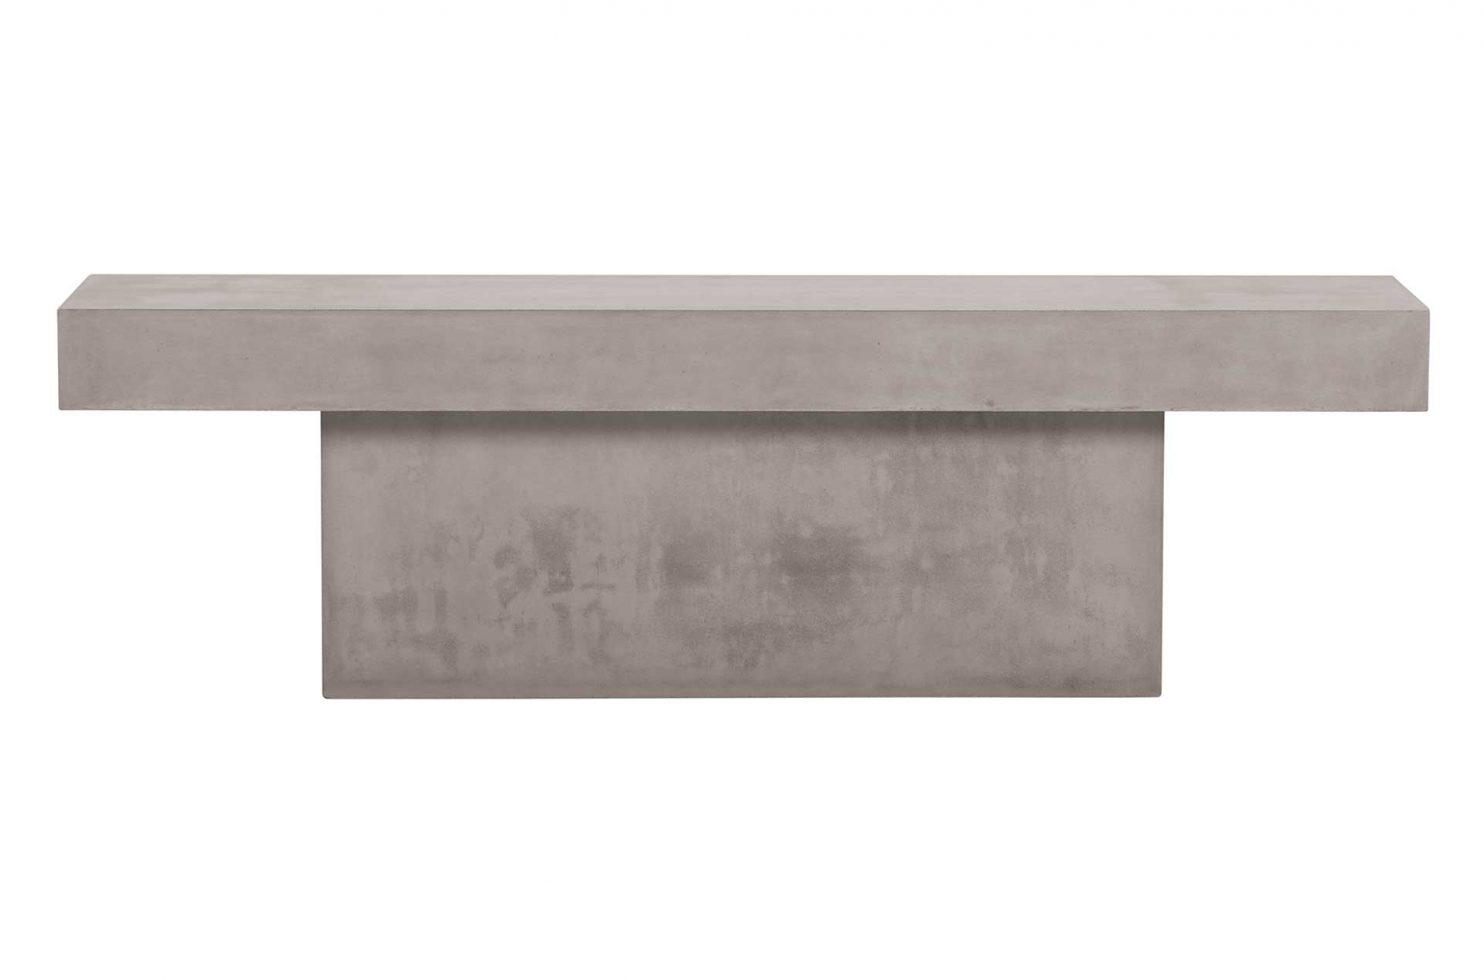 PERPETUAL T-BENCH P501992201 1 FRONT